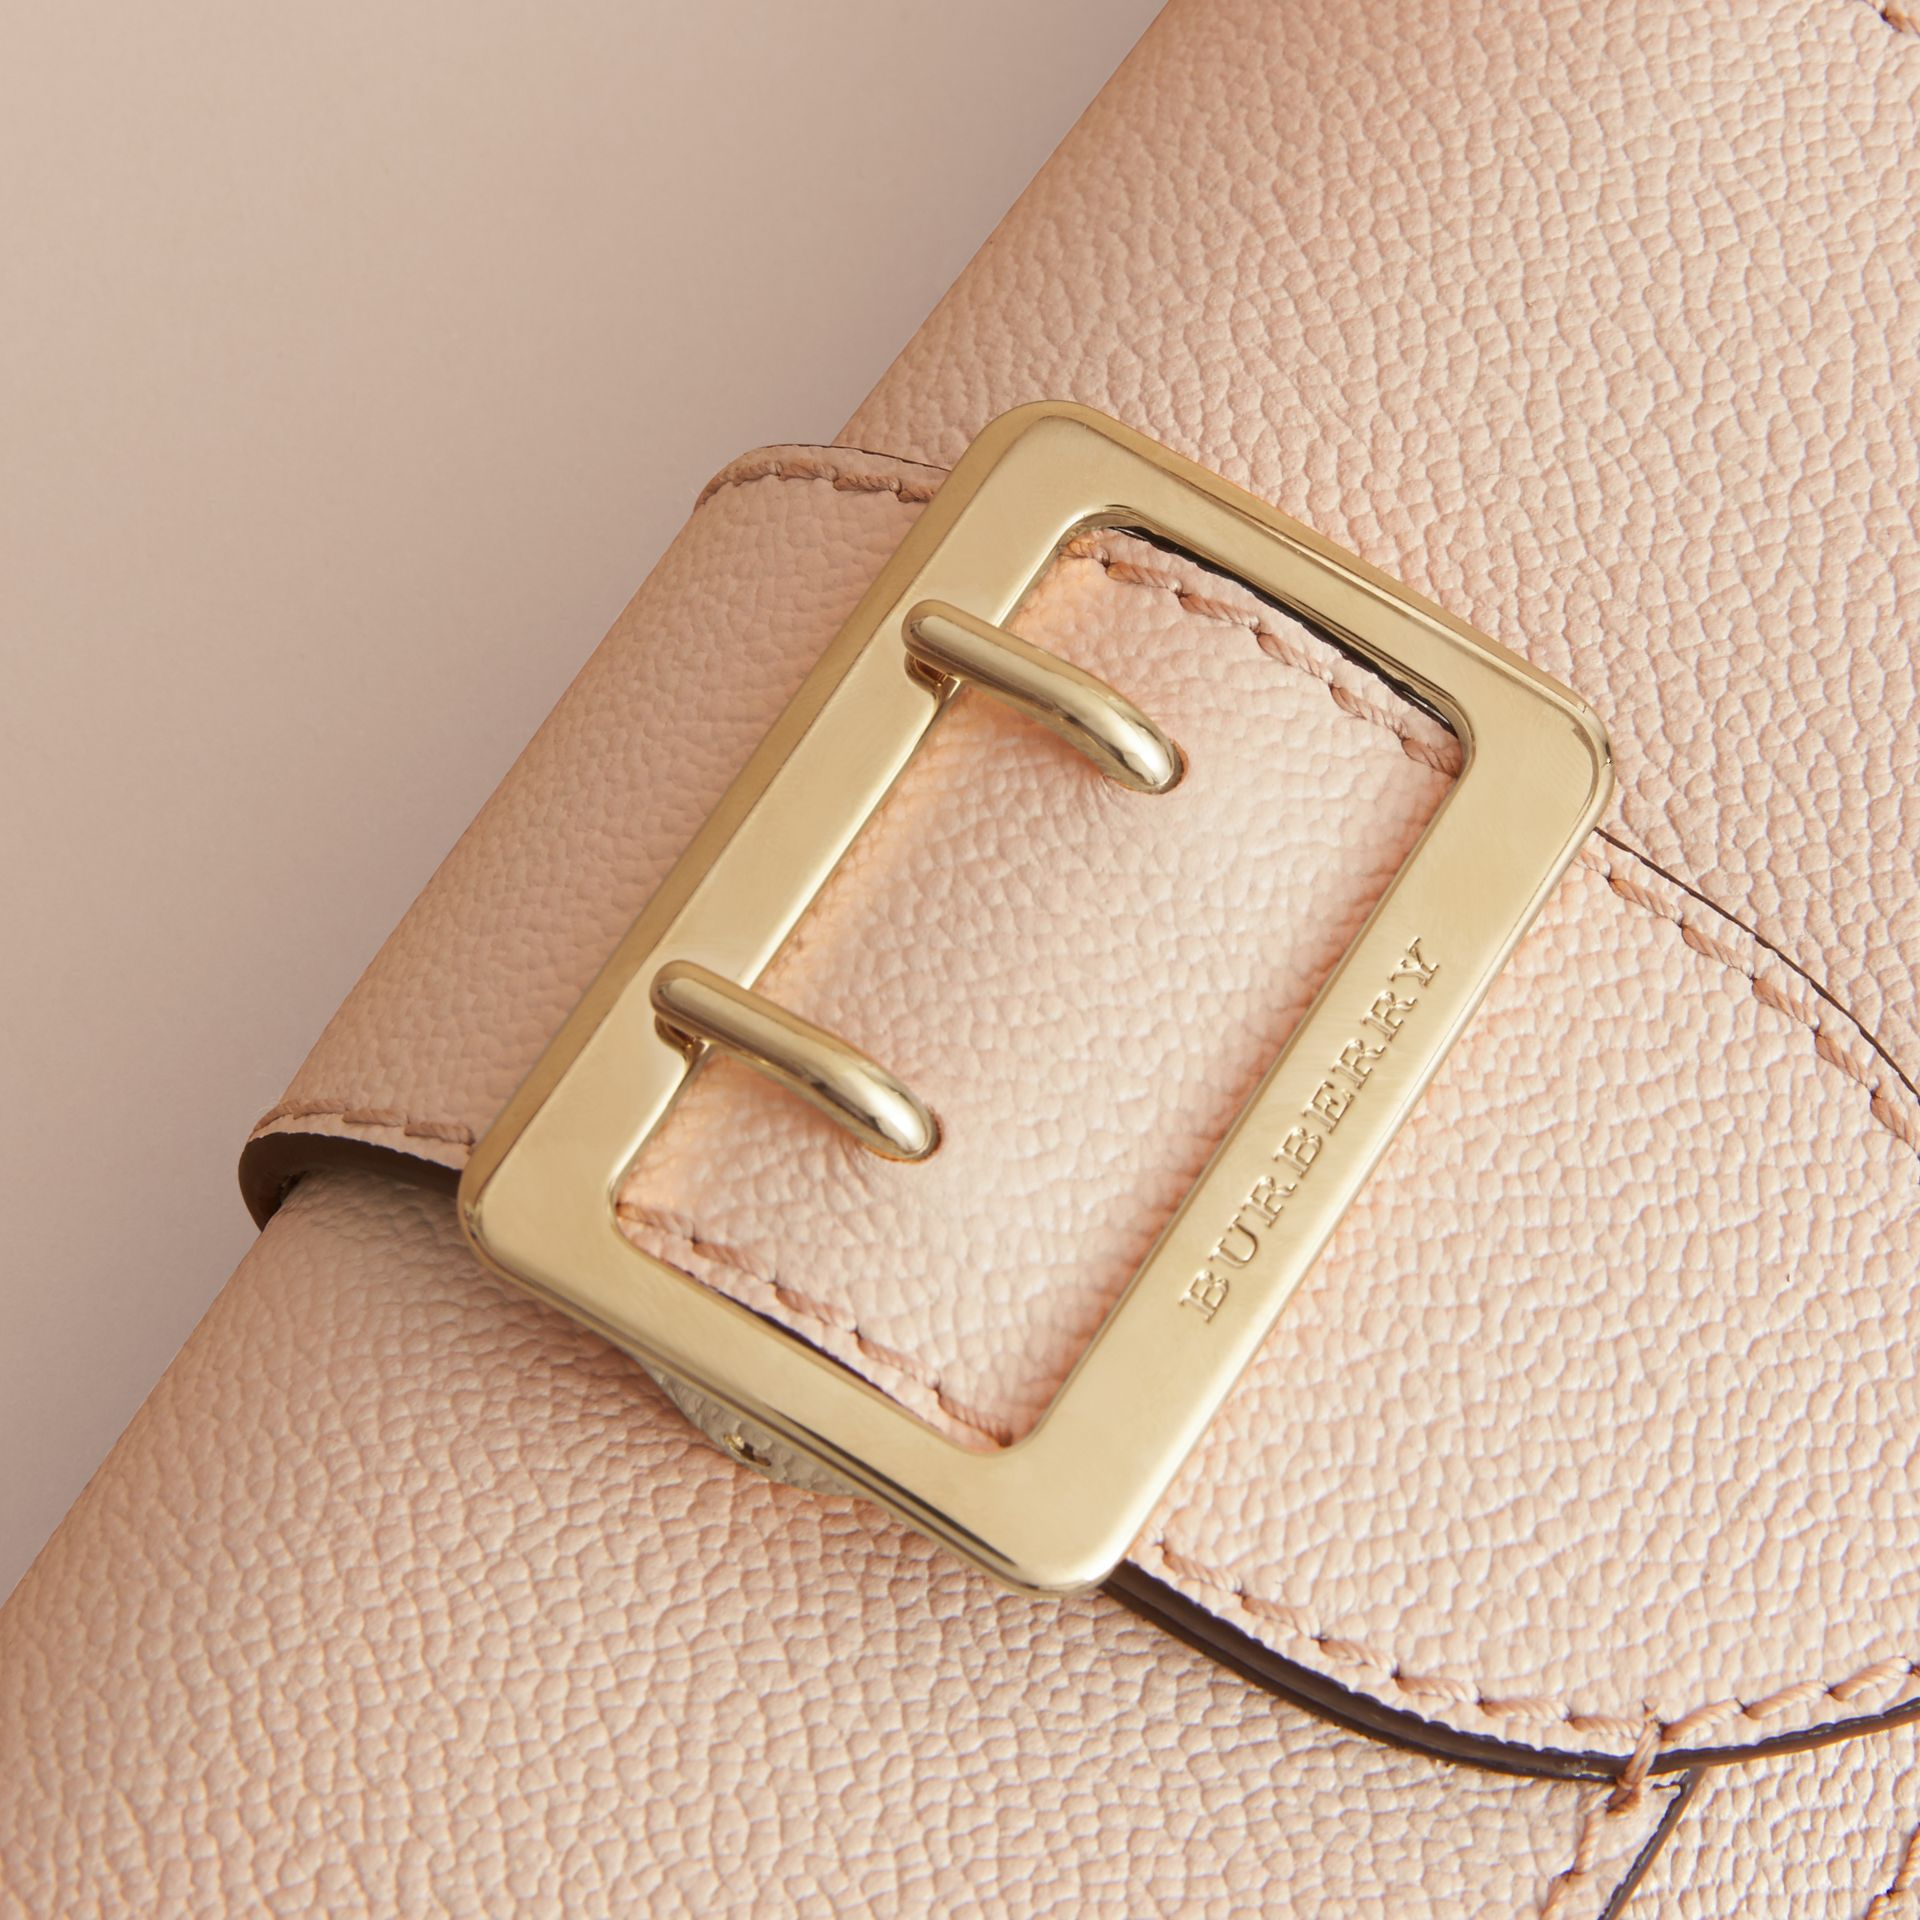 The Mini Buckle Bag in Grainy Leather in Limestone - Women | Burberry Australia - gallery image 2